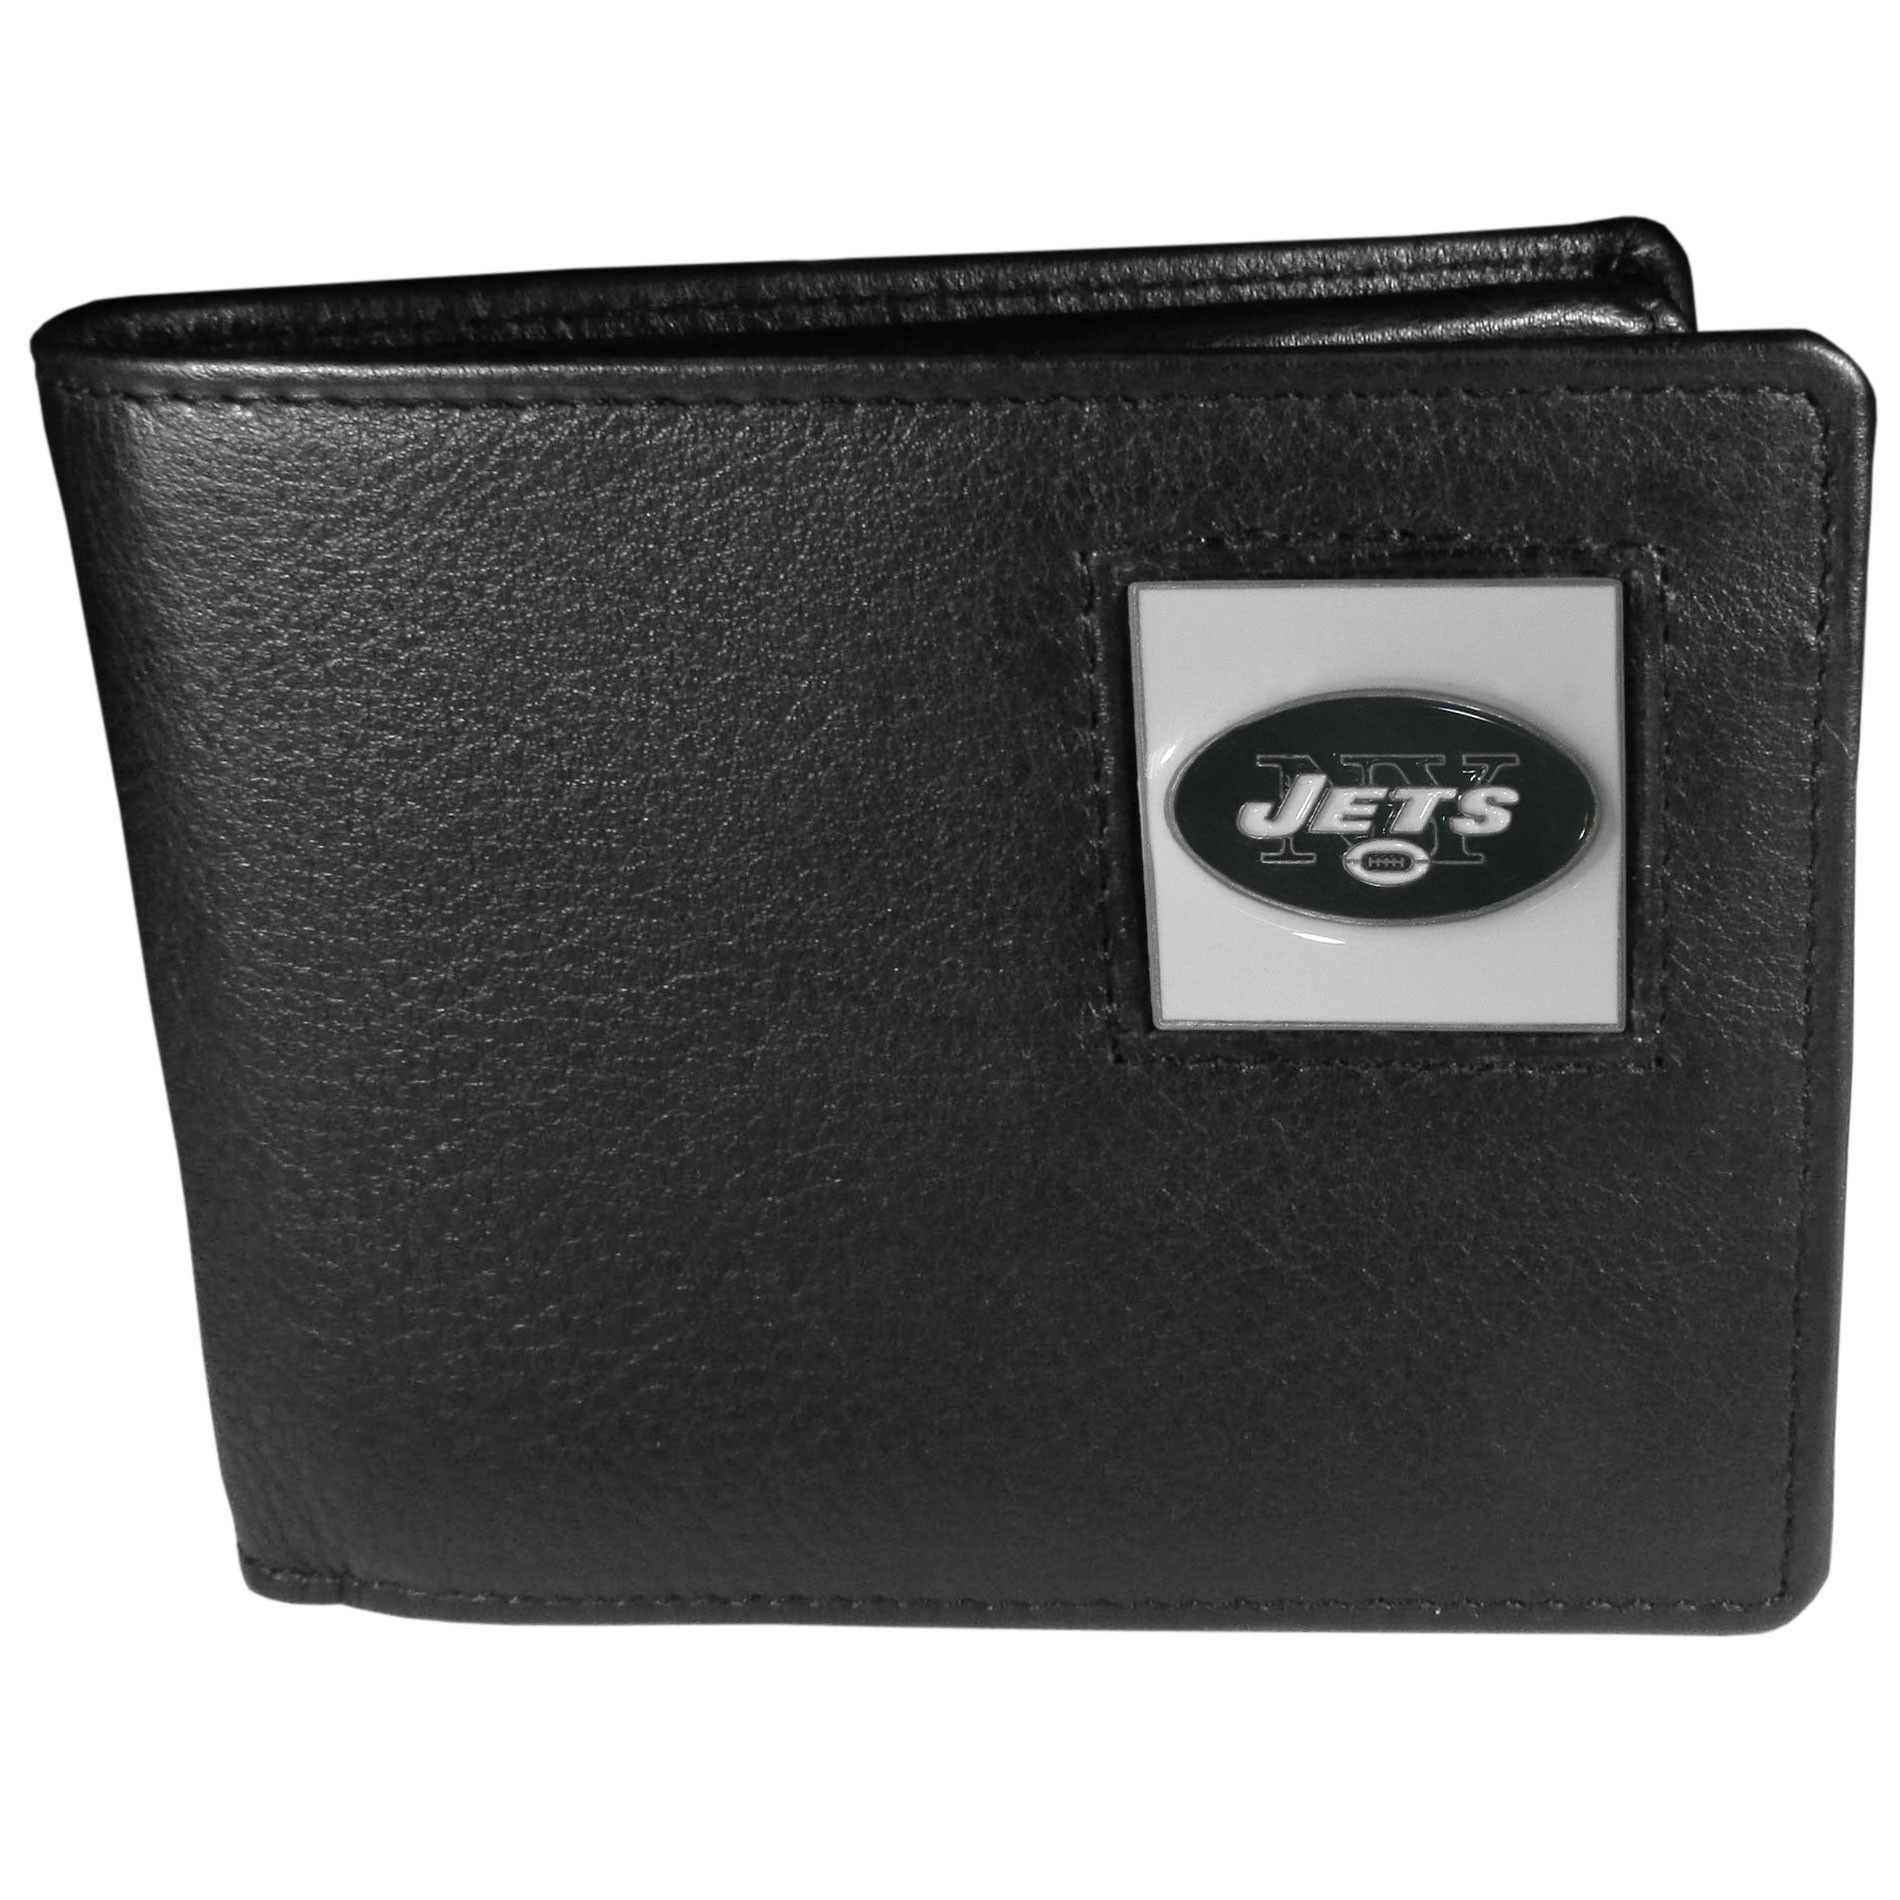 New York Jets Leather Bi-fold Wallet Packaged in Gift Box  49b760940